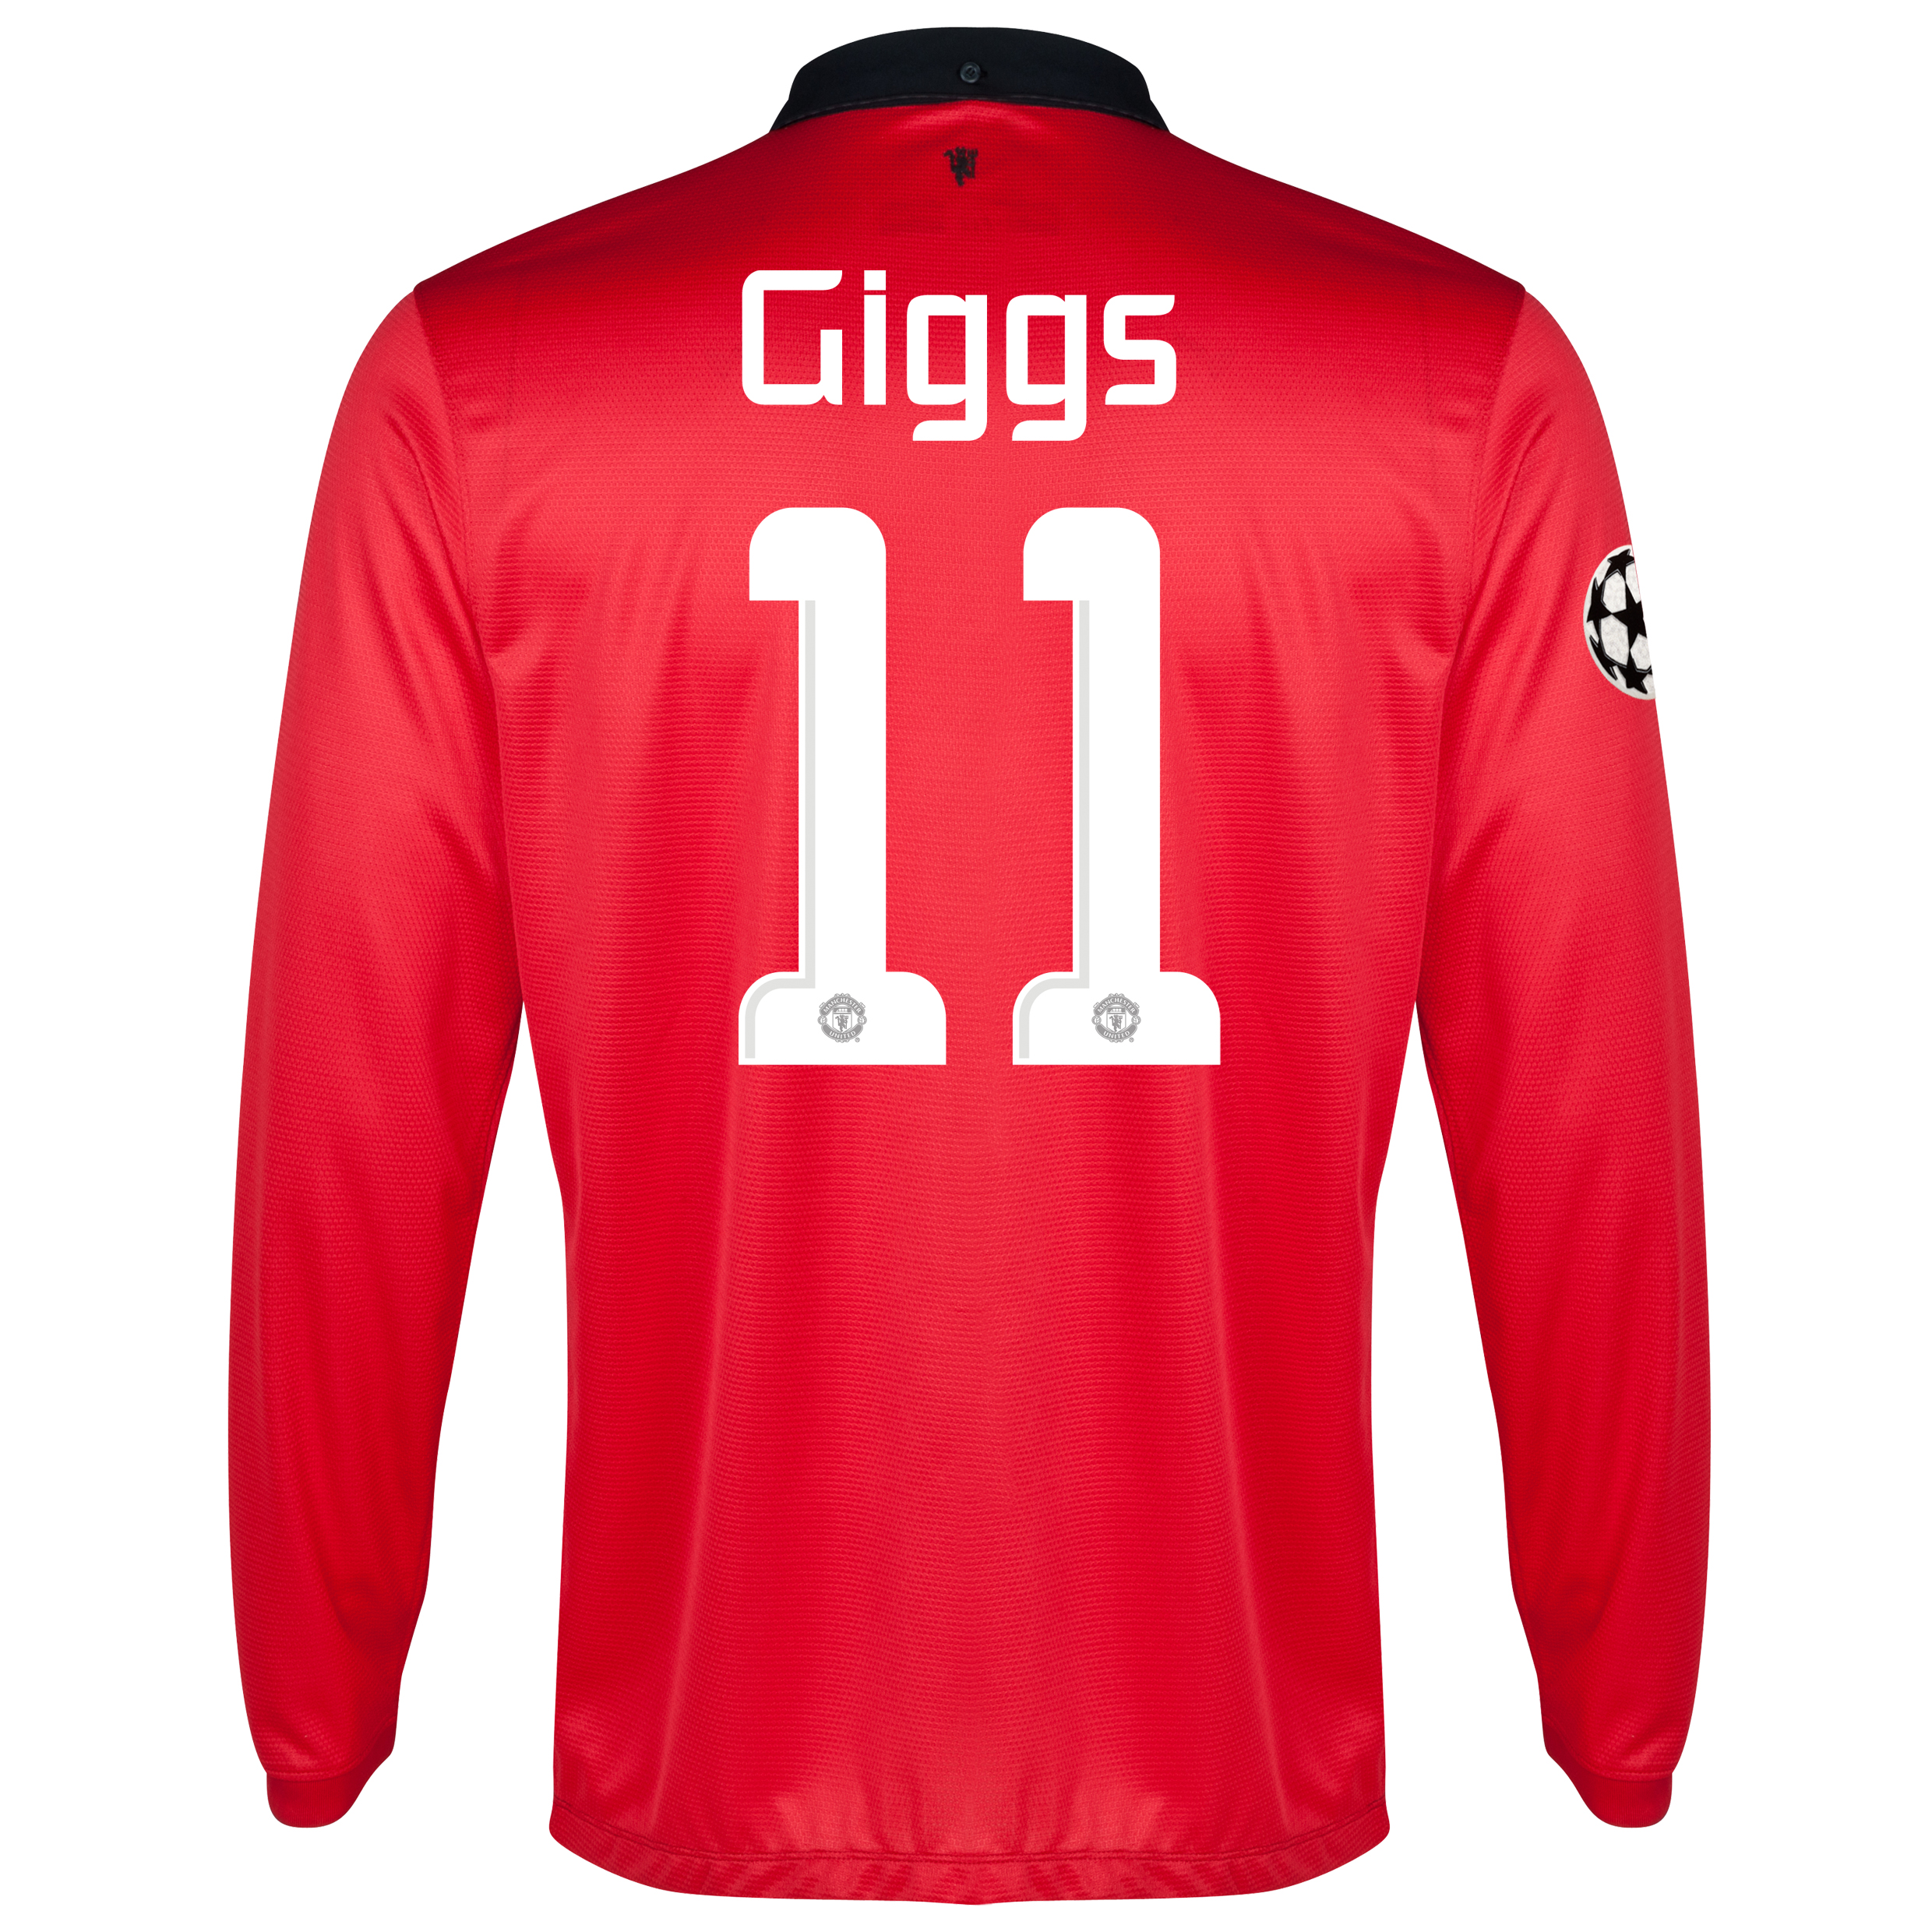 Manchester United UEFA Champions League Home Shirt 2013/14 - Long Sleeved - Kids with Giggs 11 printing